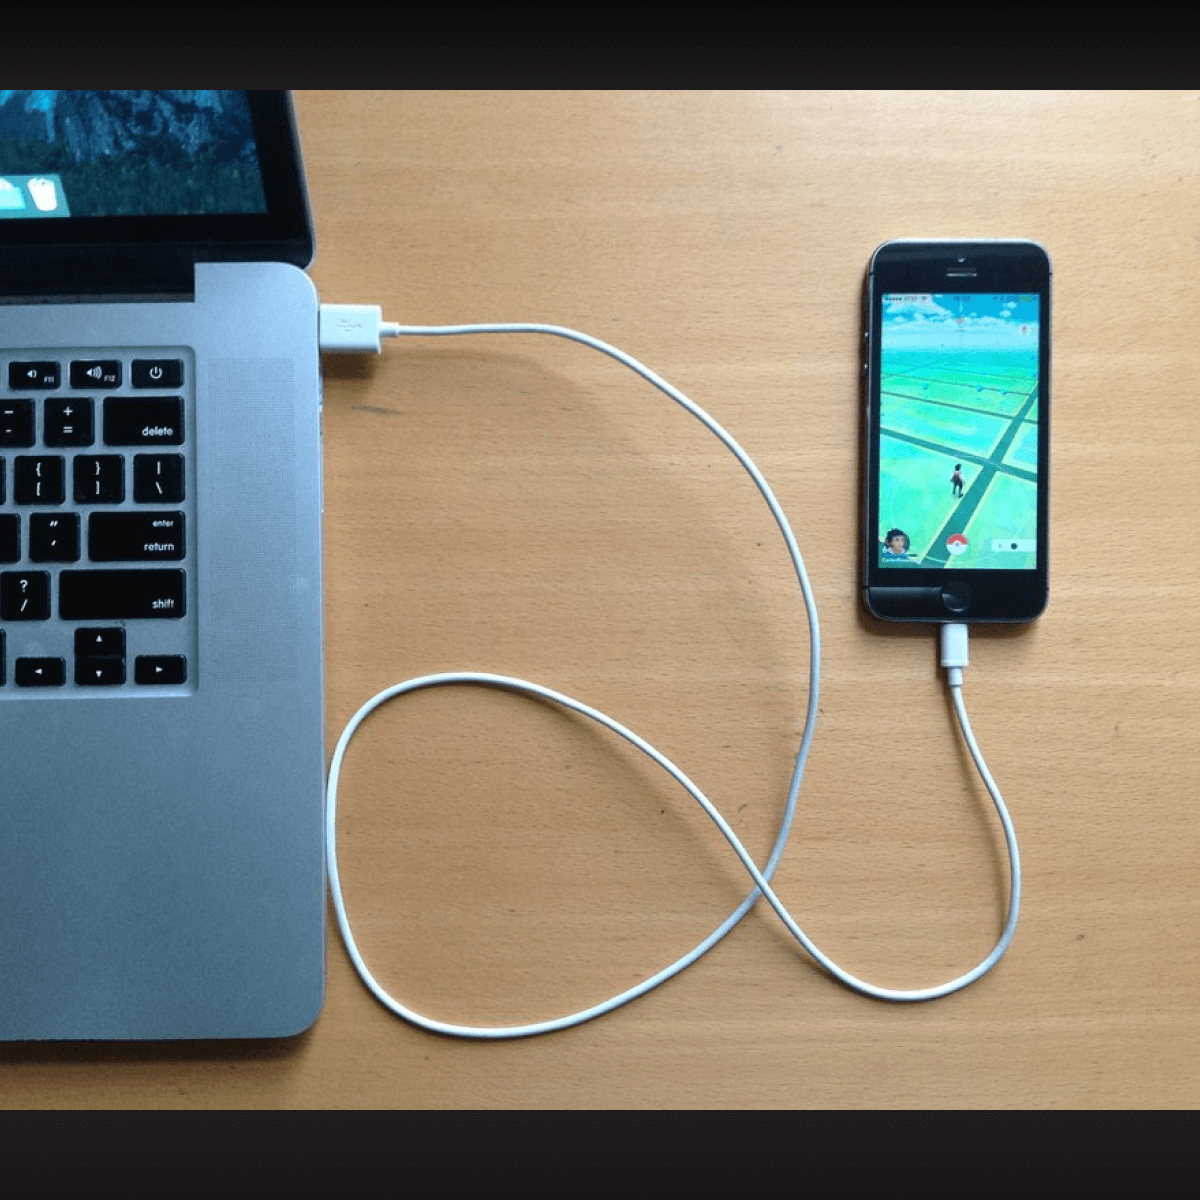 Connect iPhone to Mac using Original Cable